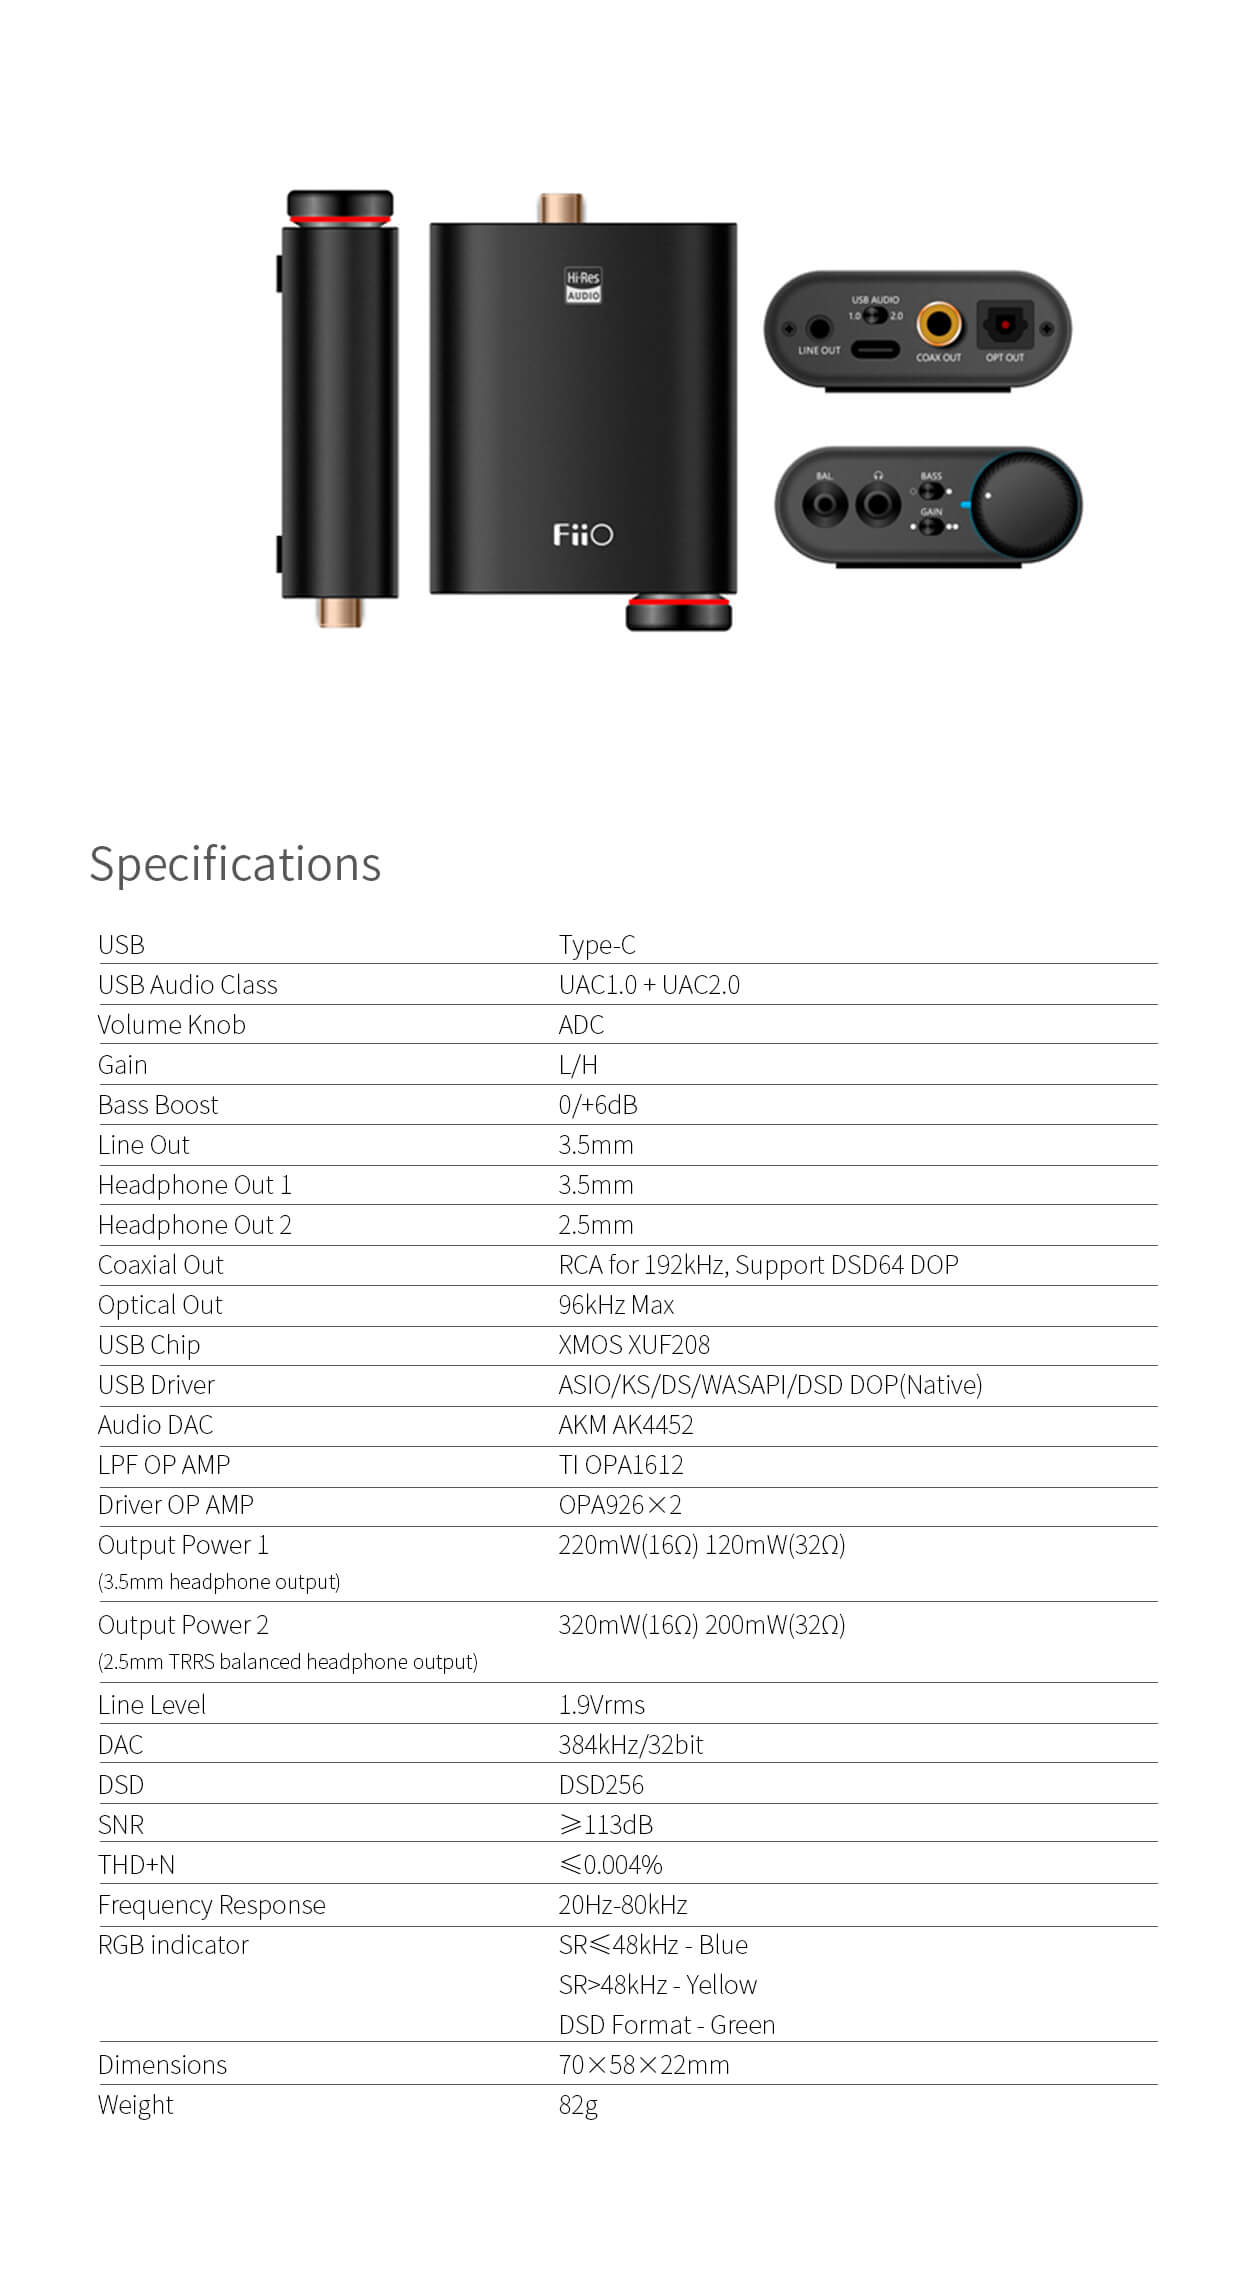 FiiO K3 Specifications